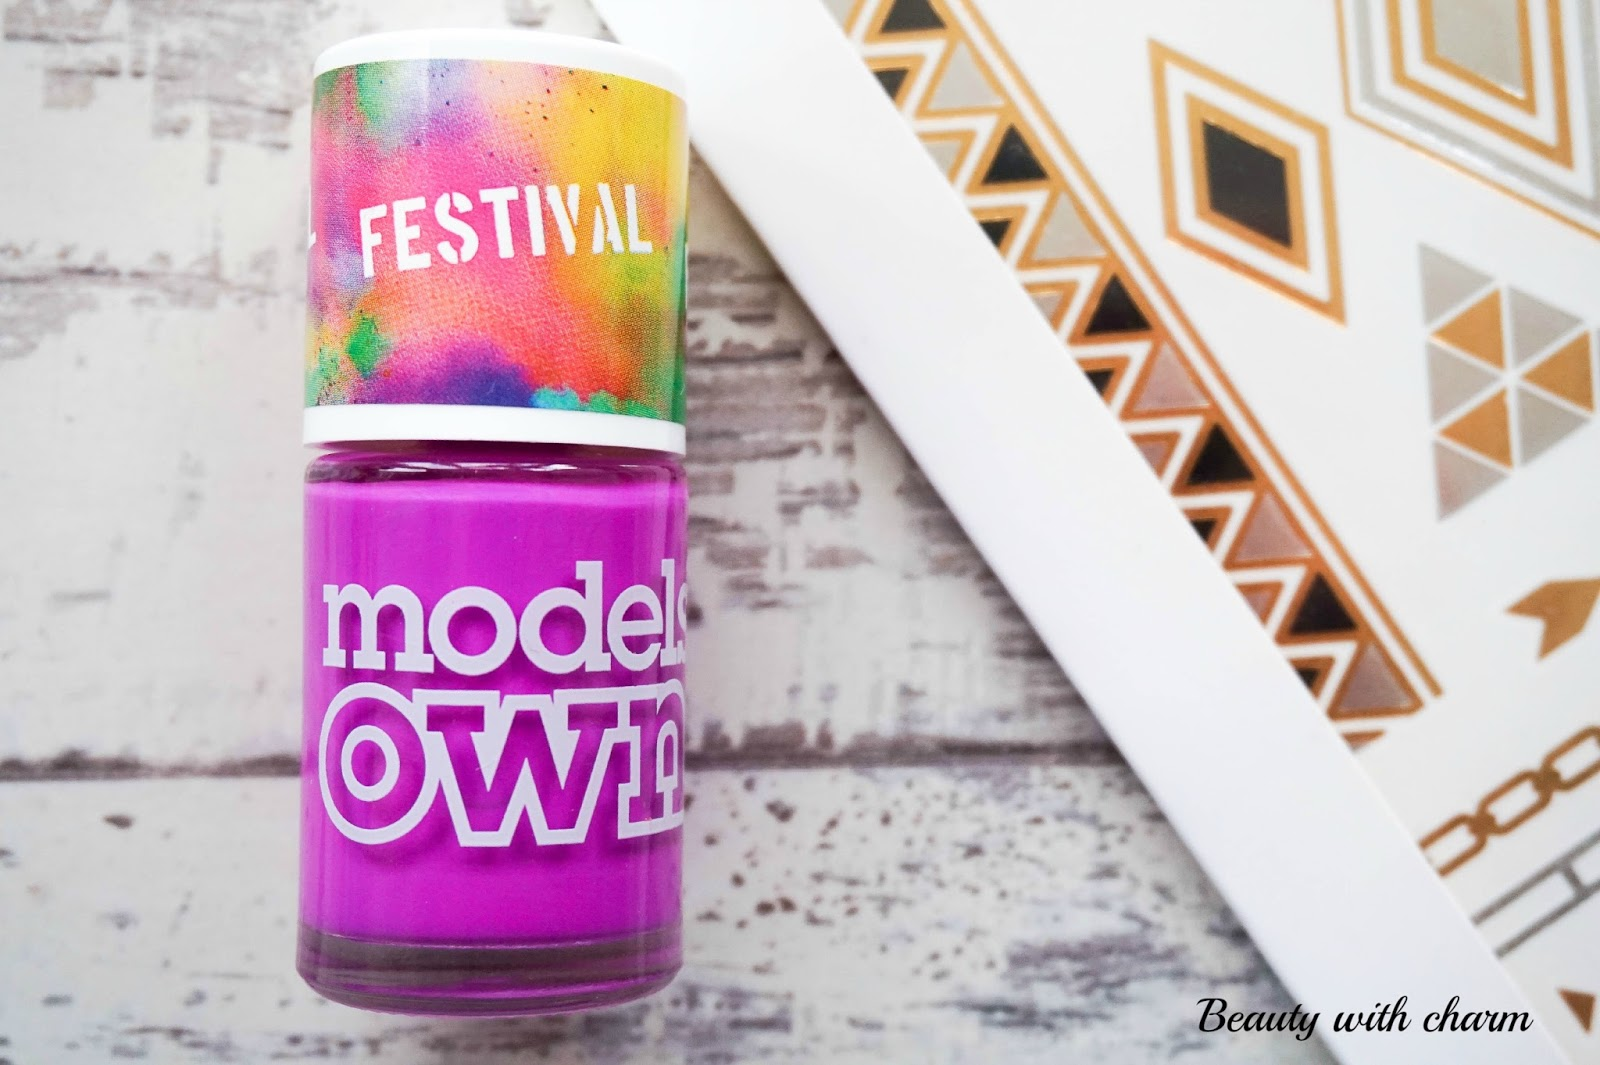 Model's Own, Festival range, Colour Chrome Body Tattoos, Nail Polish, Purple Bandana